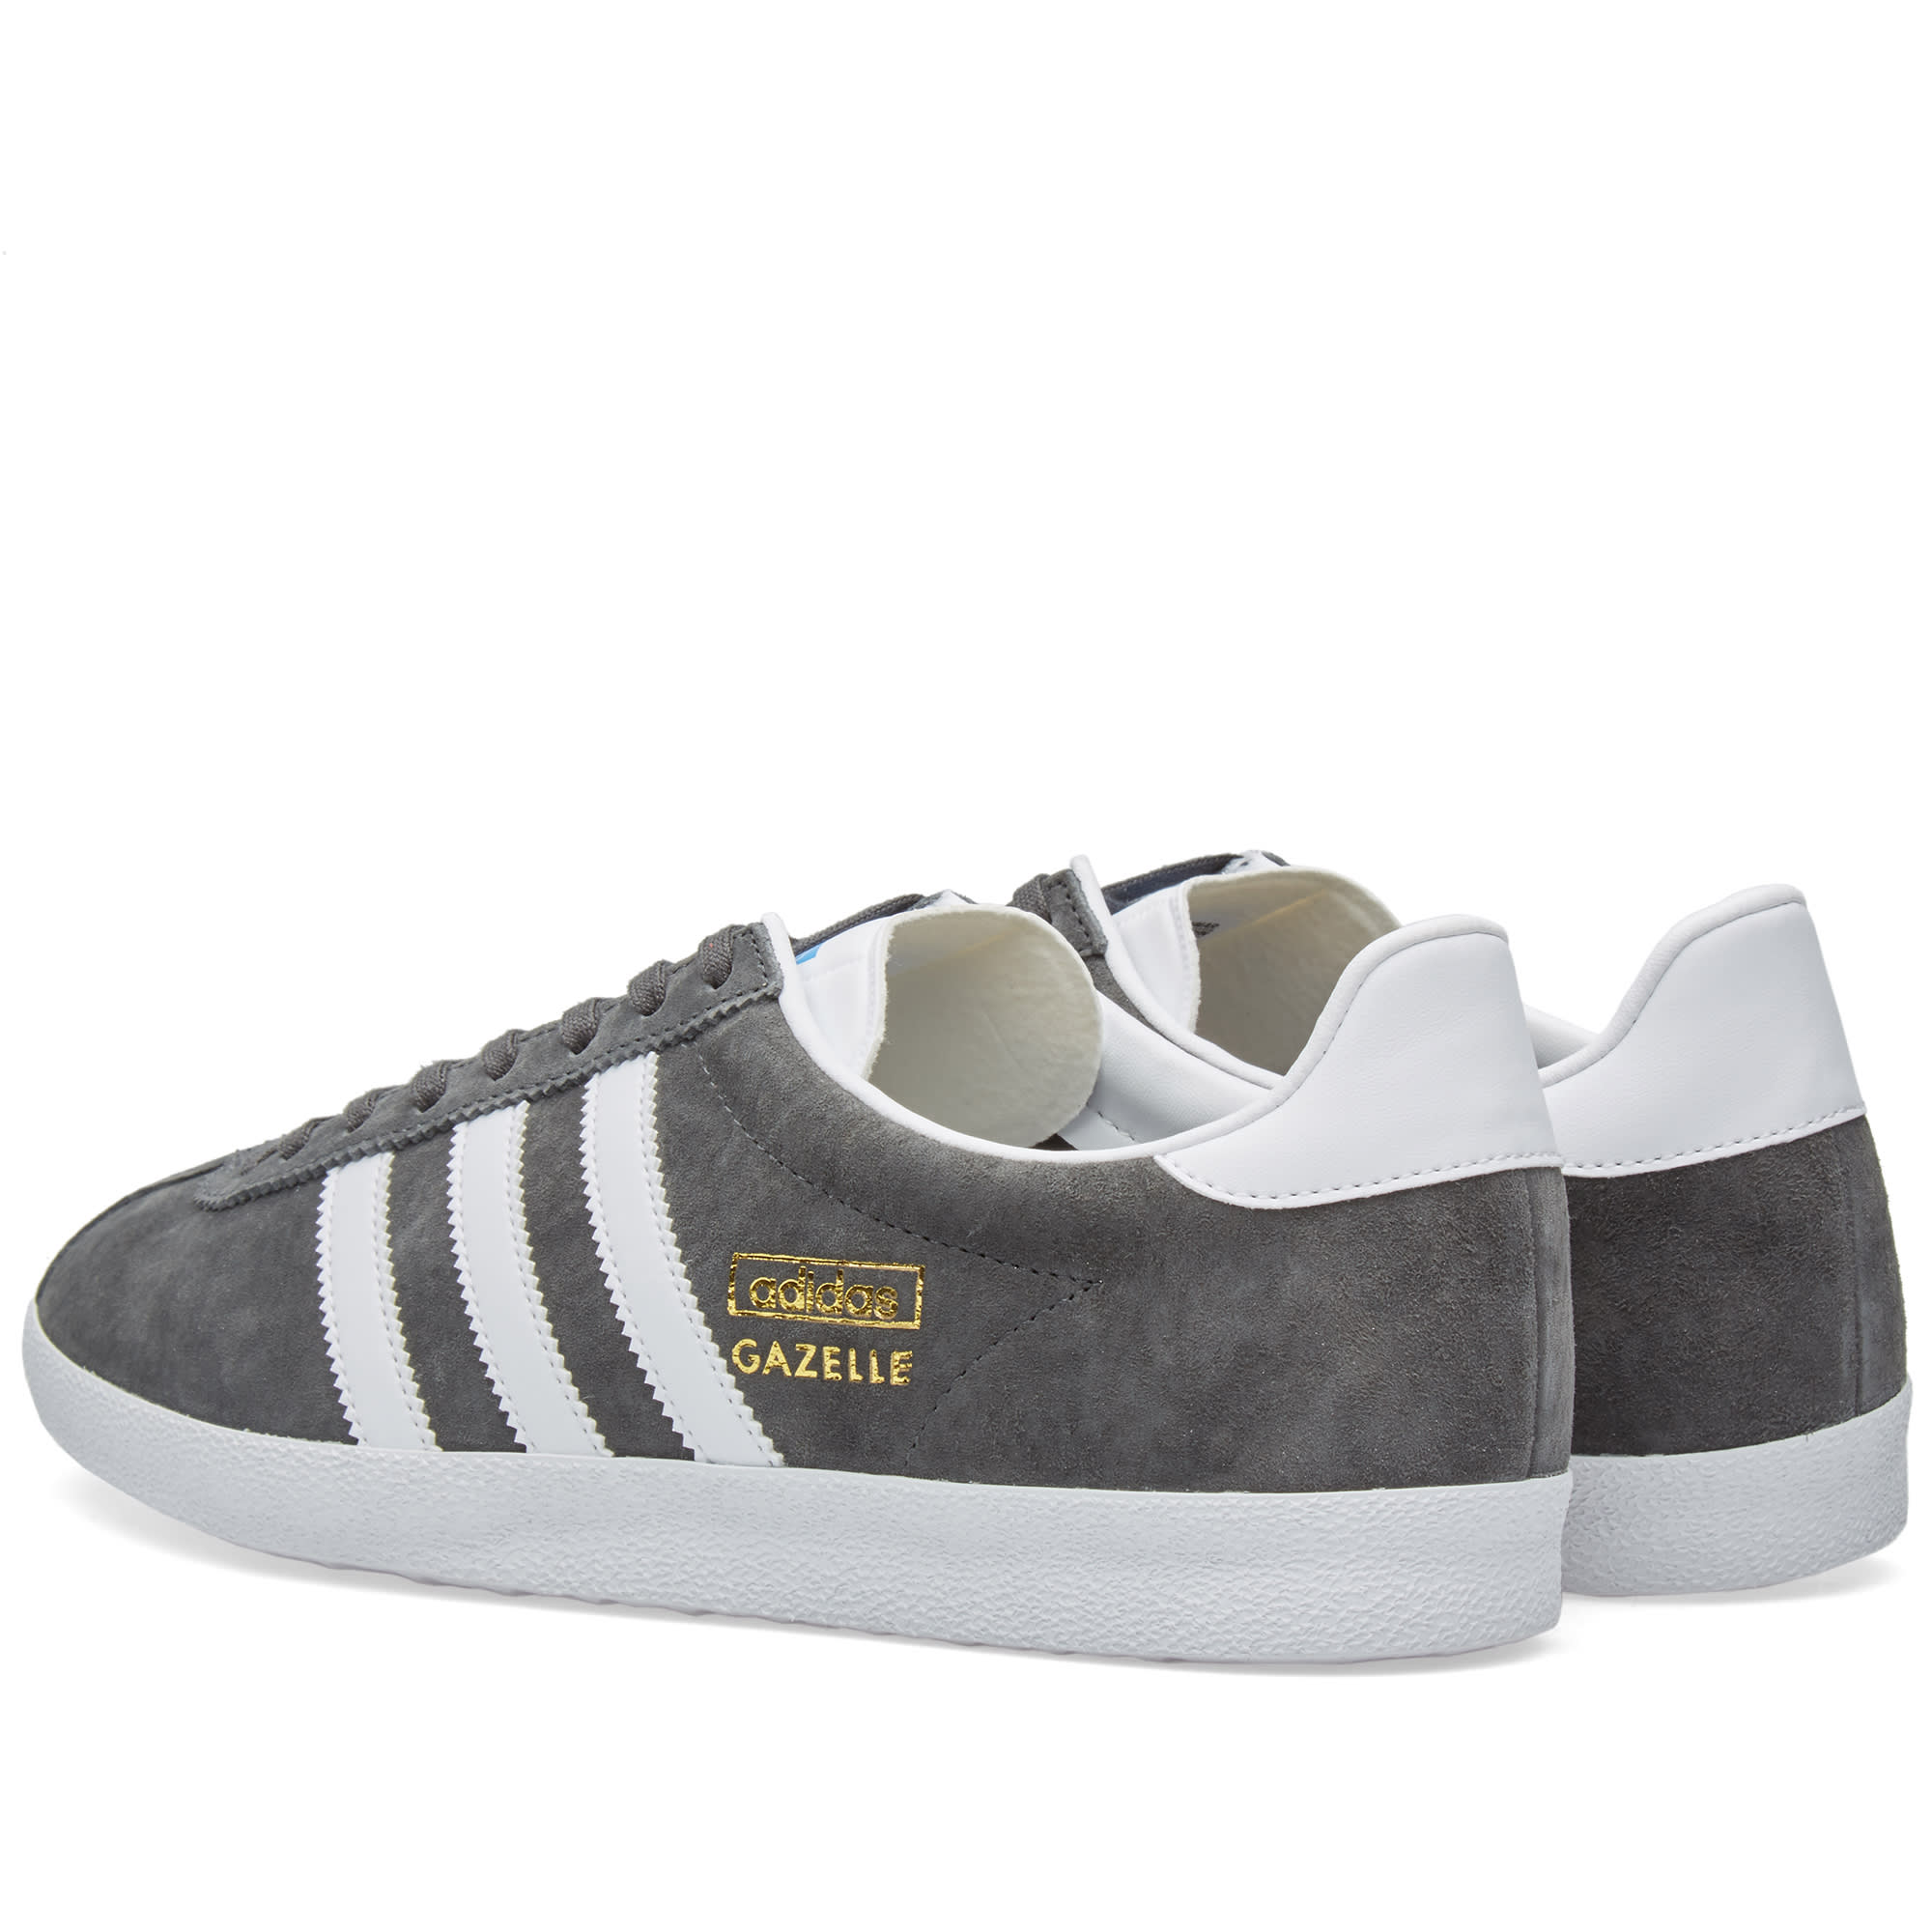 carrera miembro sátira  Adidas Gazelle OG Solid Grey, White & Dark Grey | END.